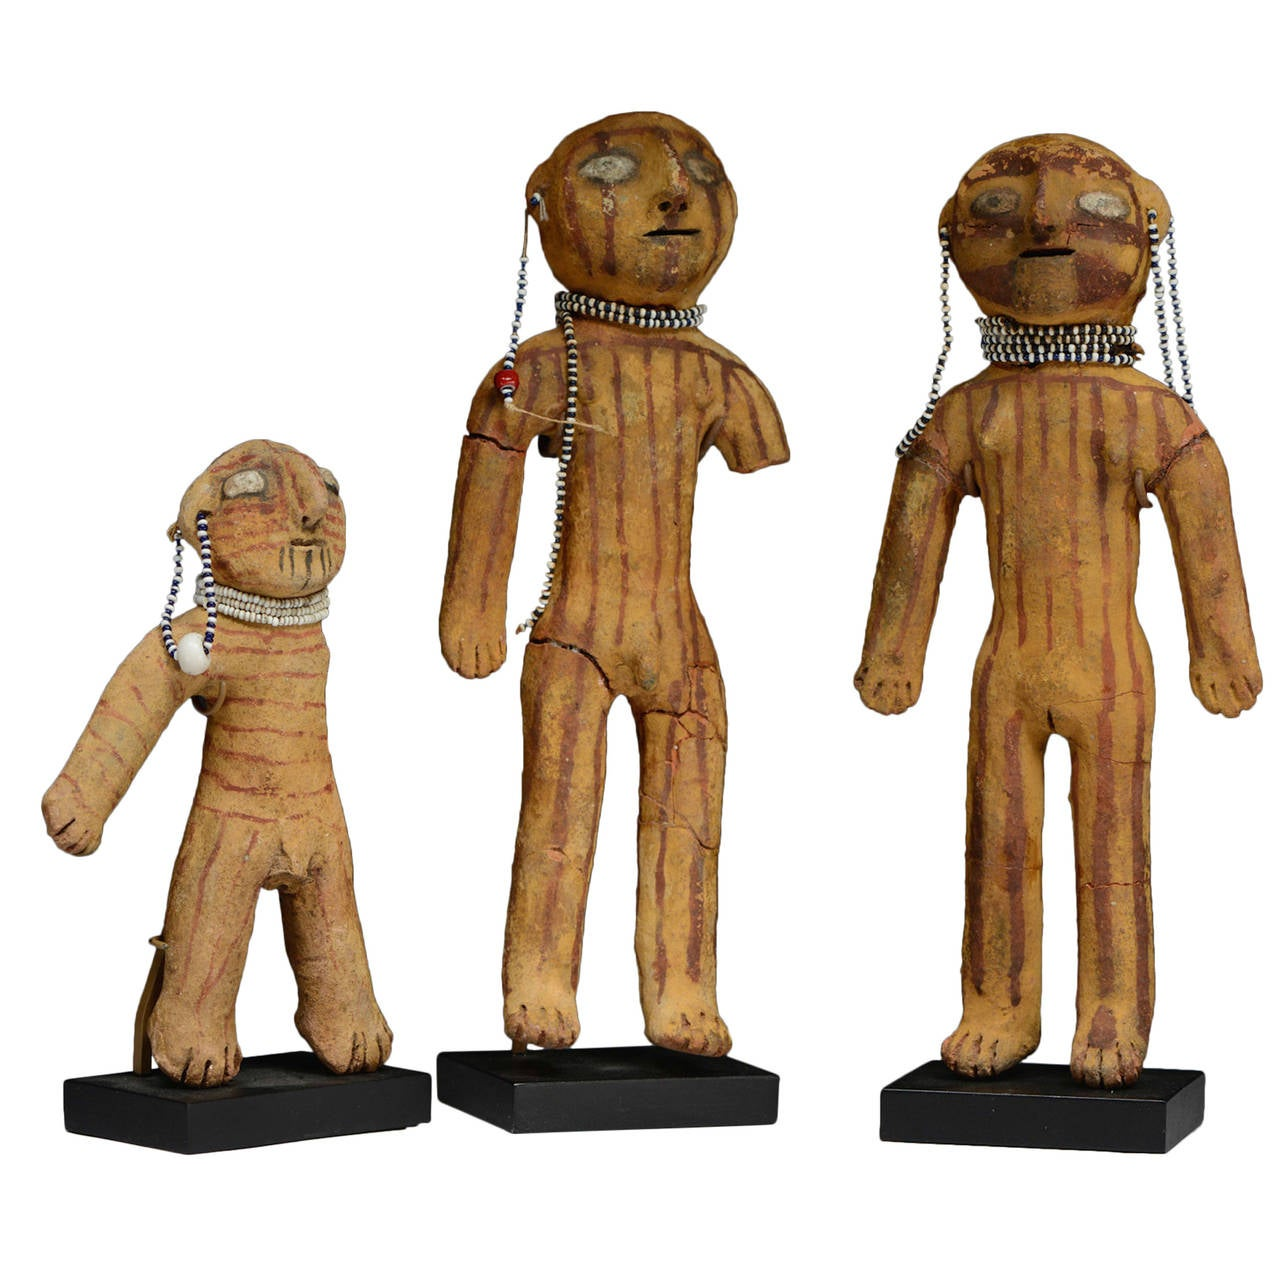 Antique Native American Mojave Dolls, 19th Century